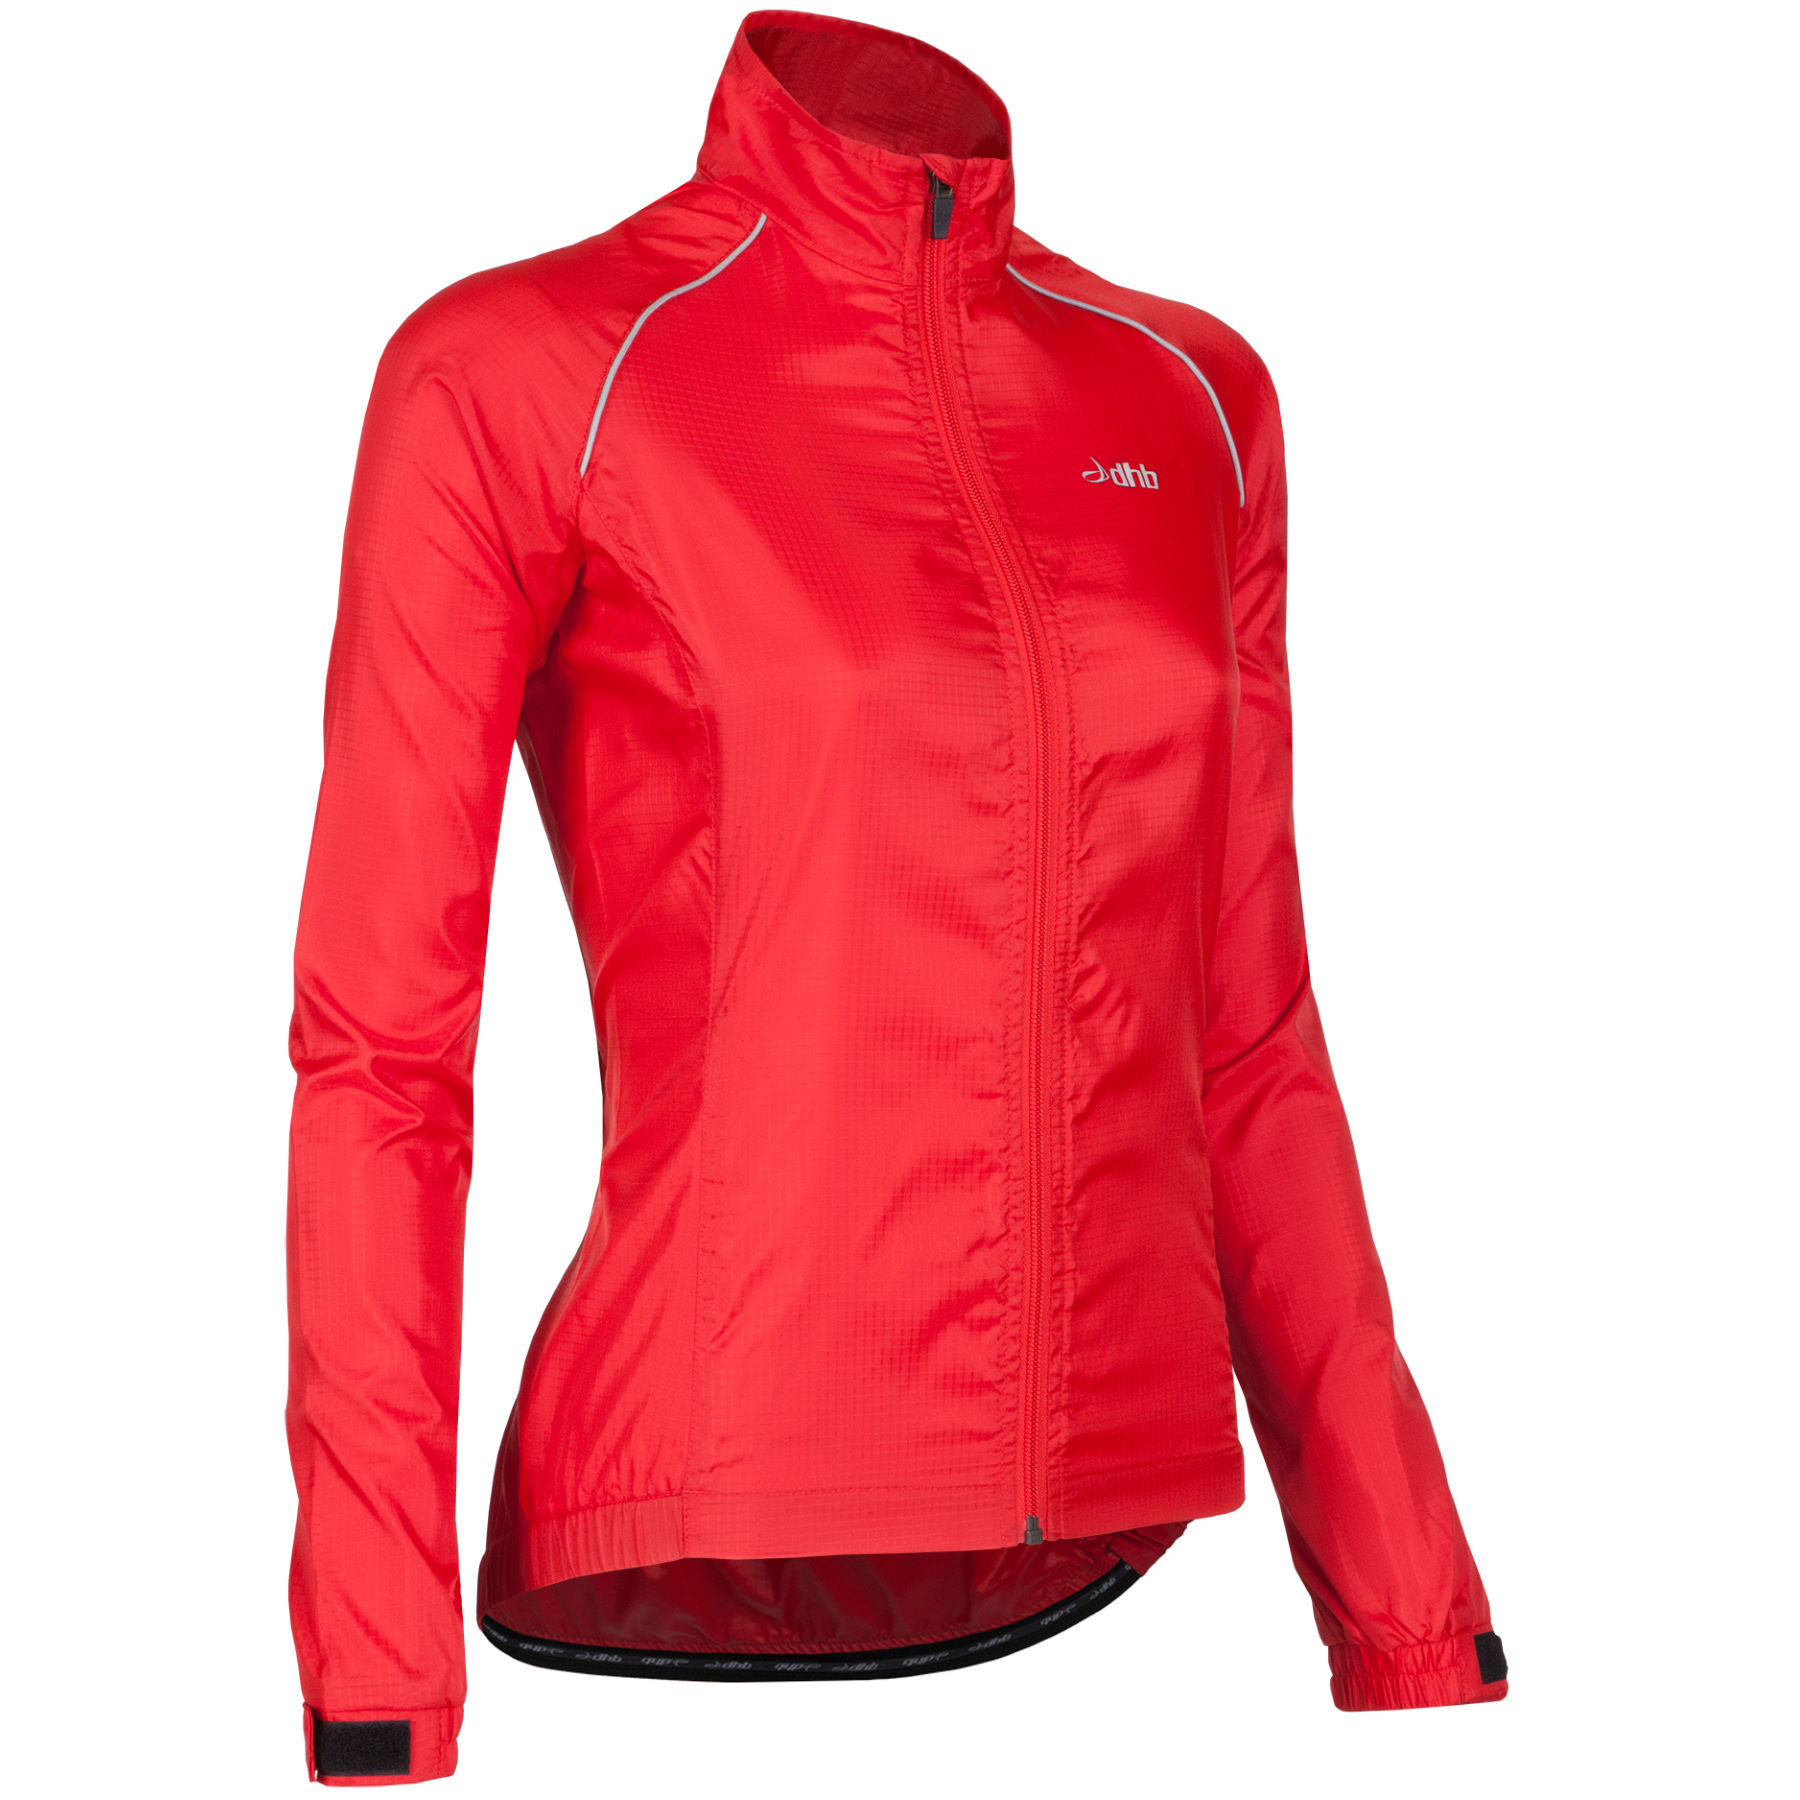 Wiggle | dhb Women&39s Active Waterproof Cycle Jacket | Cycling